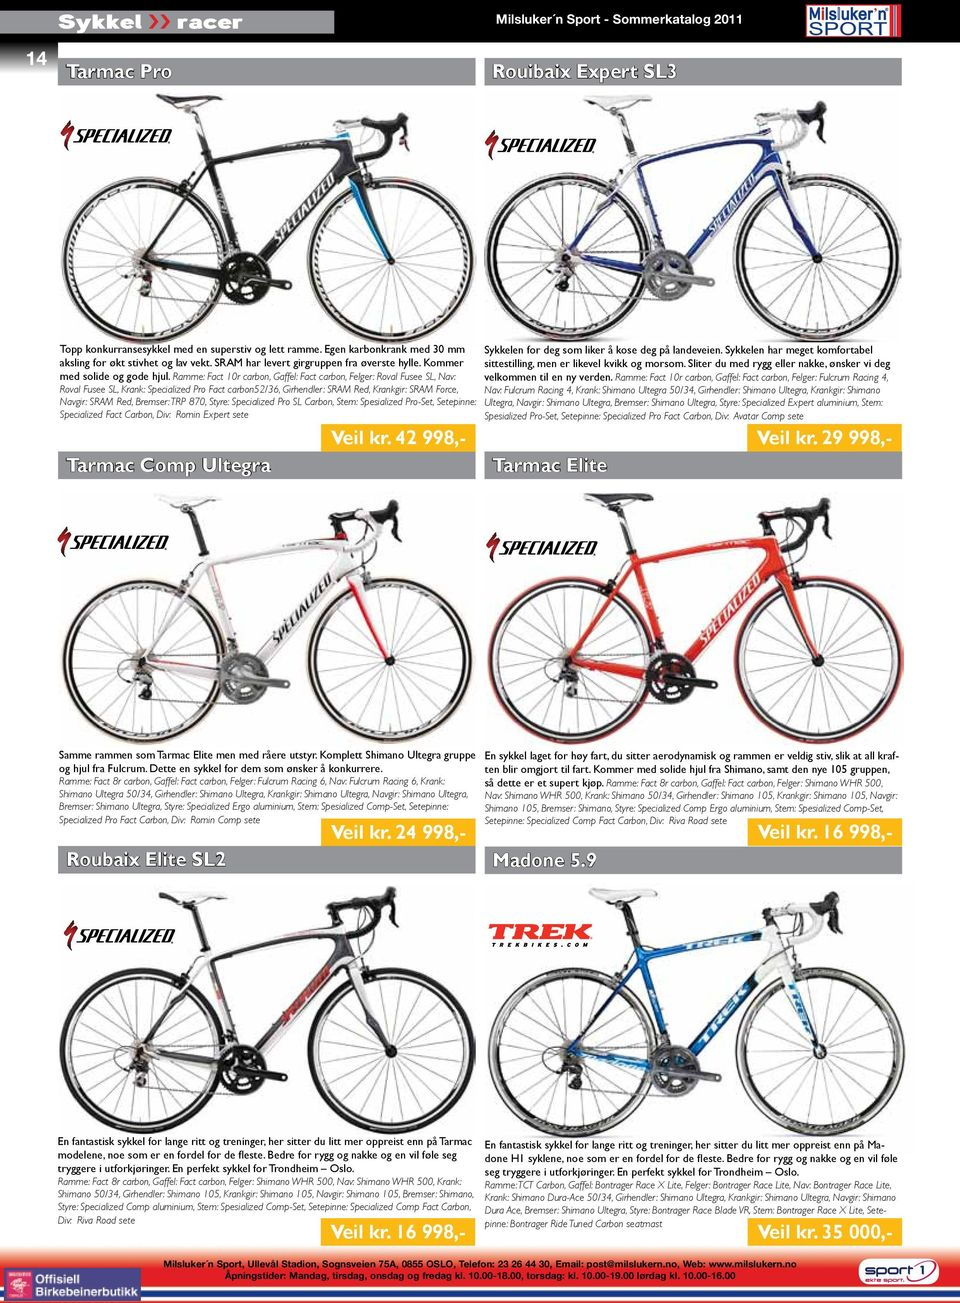 Ramme: Fact 10r carbon, Gaffel: Fact carbon, Felger: Roval Fusee SL, Nav: Roval Fusee SL, Krank: Specialized Pro Fact carbon52/36, Girhendler: SRAM Red, Krankgir: SRAM Force, Navgir: SRAM Red,